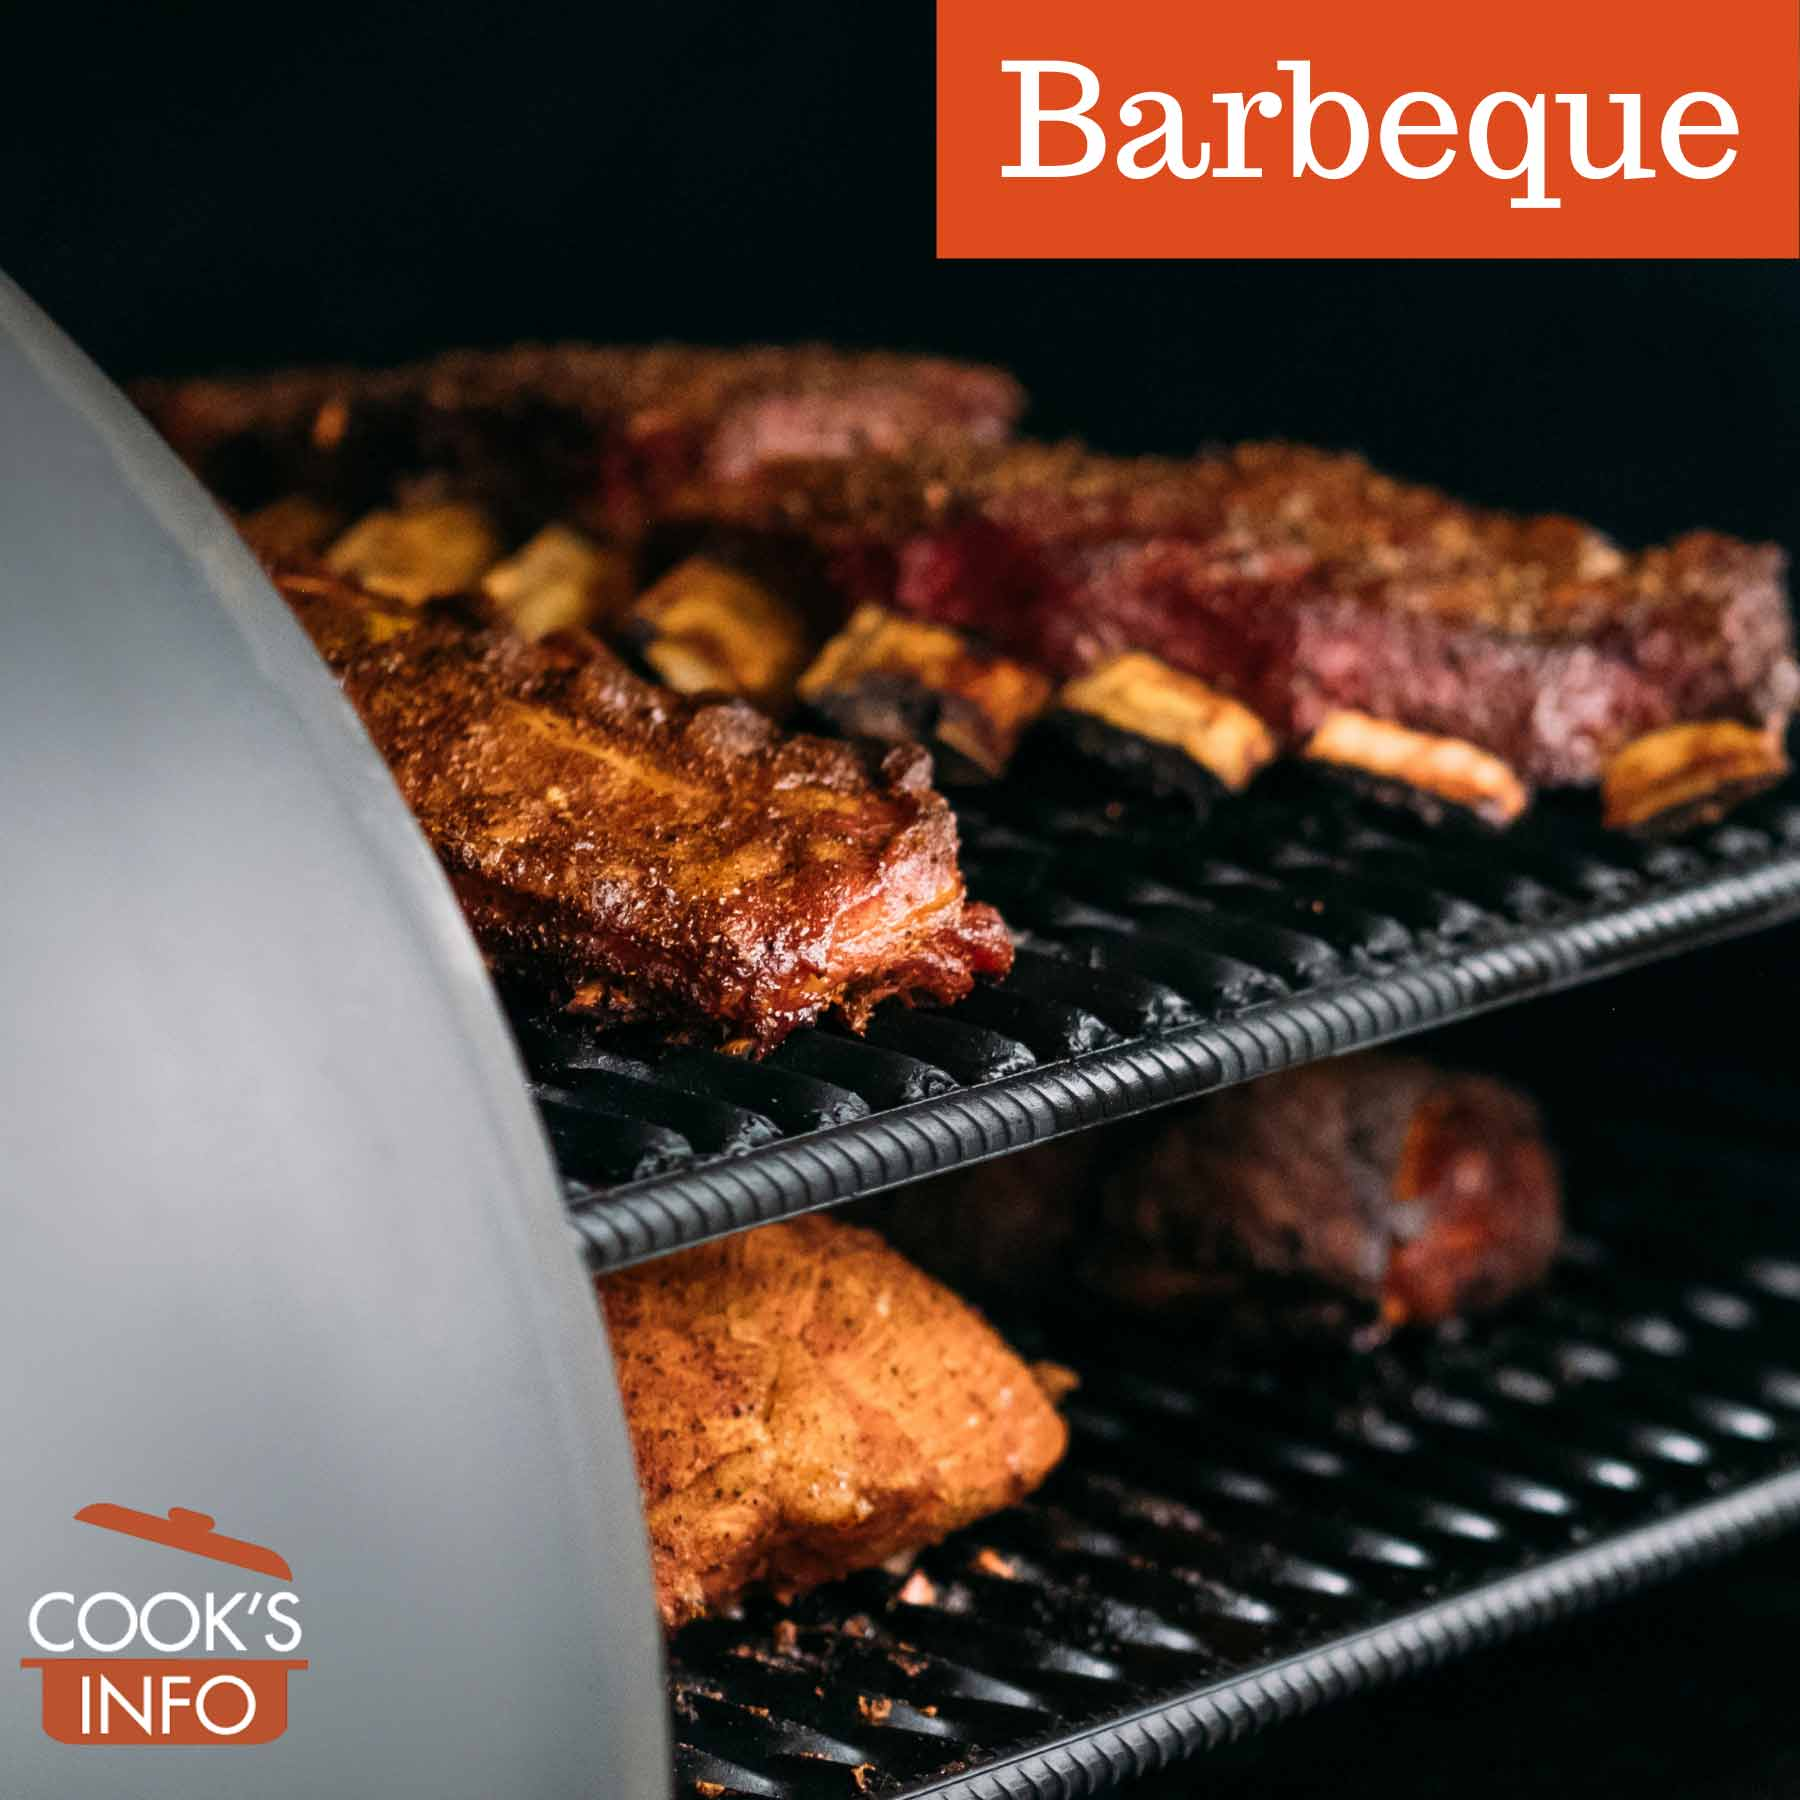 Barbequing cuts of meat in a smoker